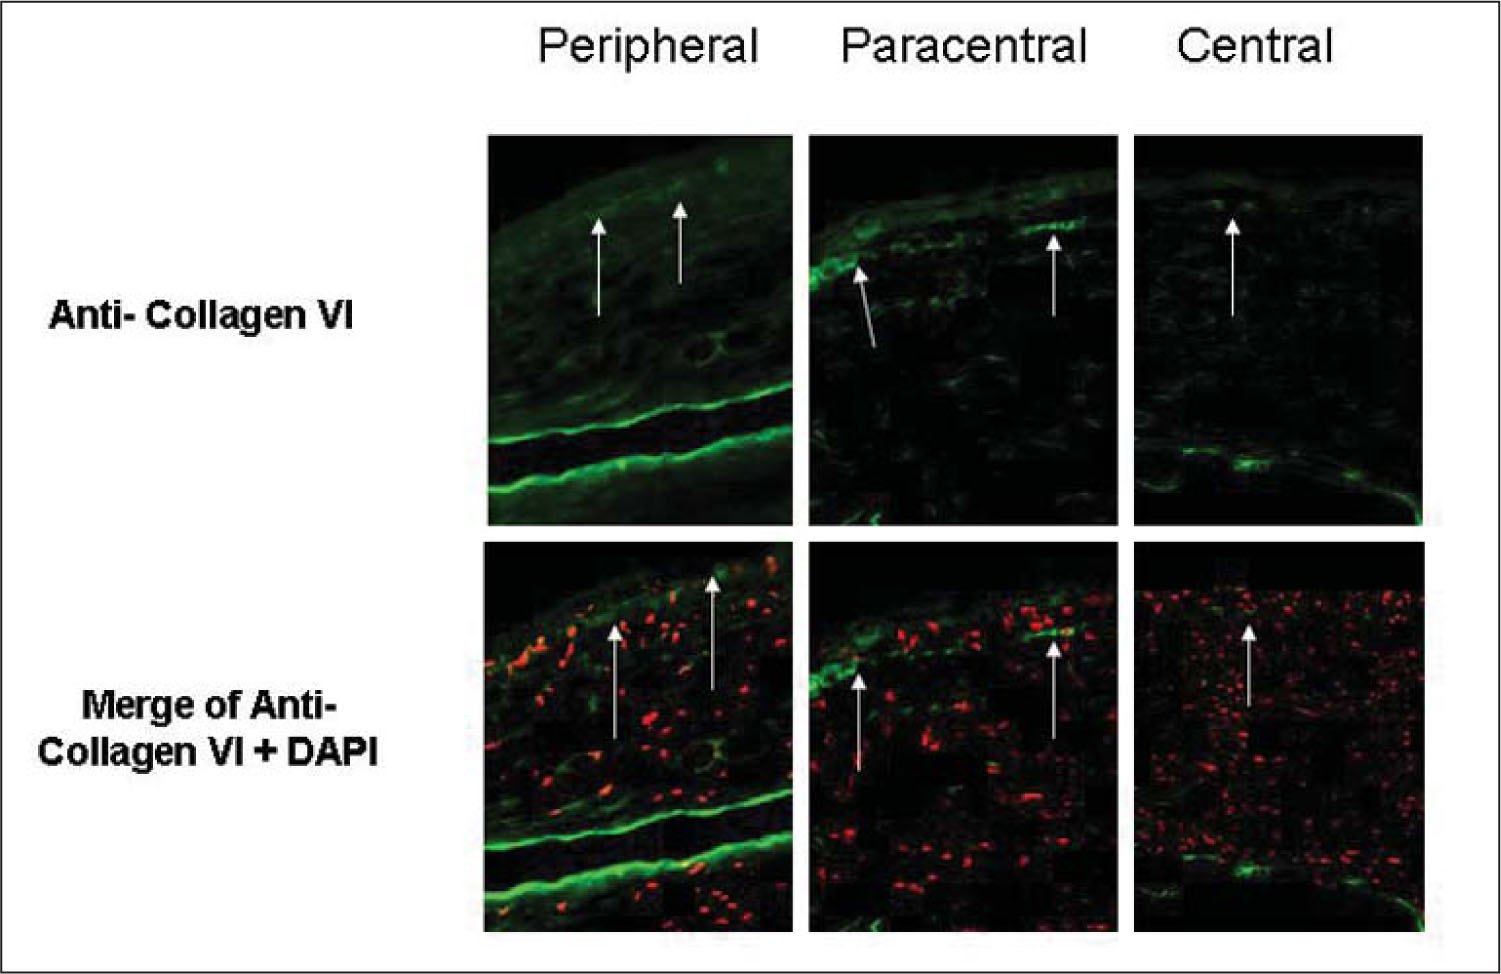 Expression of collagen VI (arrows) was observed in the interface of all samples in the paracentral and peripheral wound margin and less intensely in the central cornea (upper panels). 4′6-diamidino-2-phenylindole (DAPI) was used for nuclear counterstaining (red cells) (lower panels).